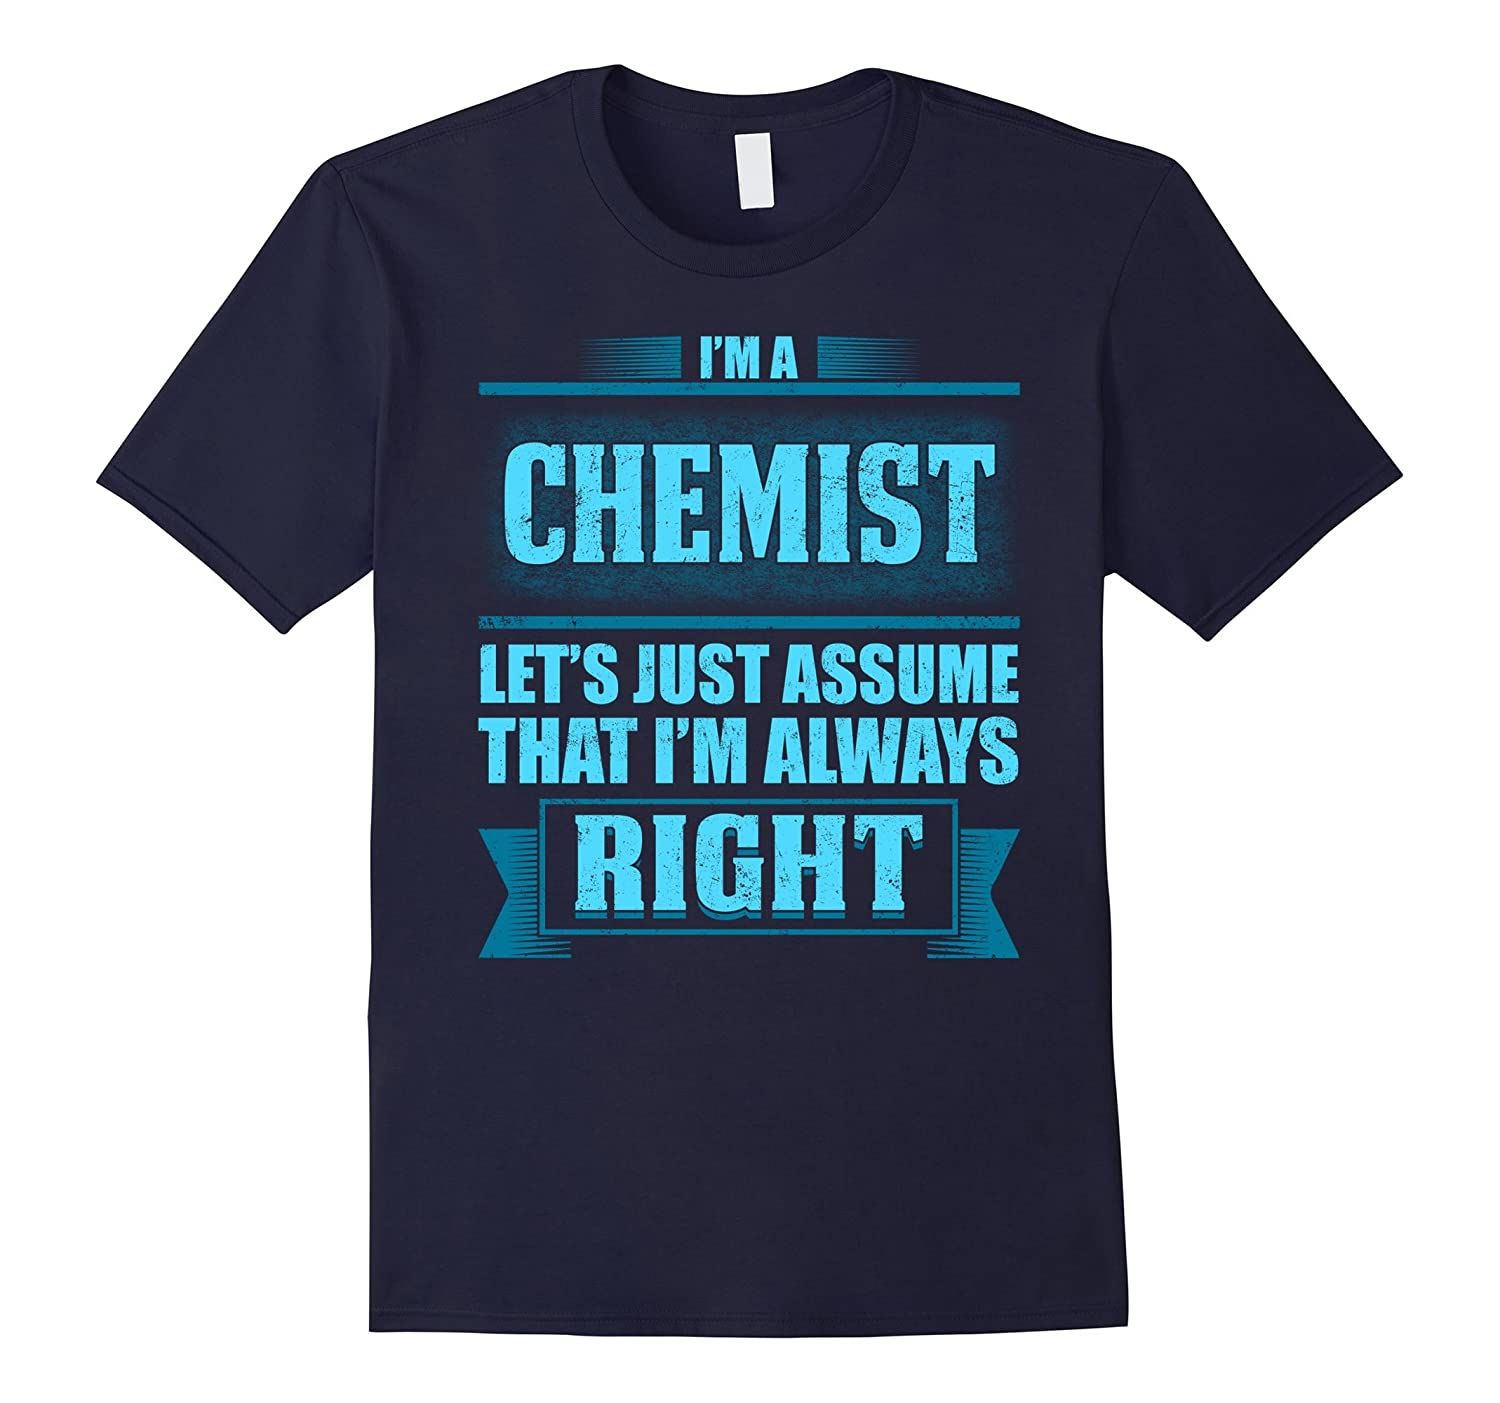 Im A Chemist T-shirt Lets Just Assume That Im Right-TD